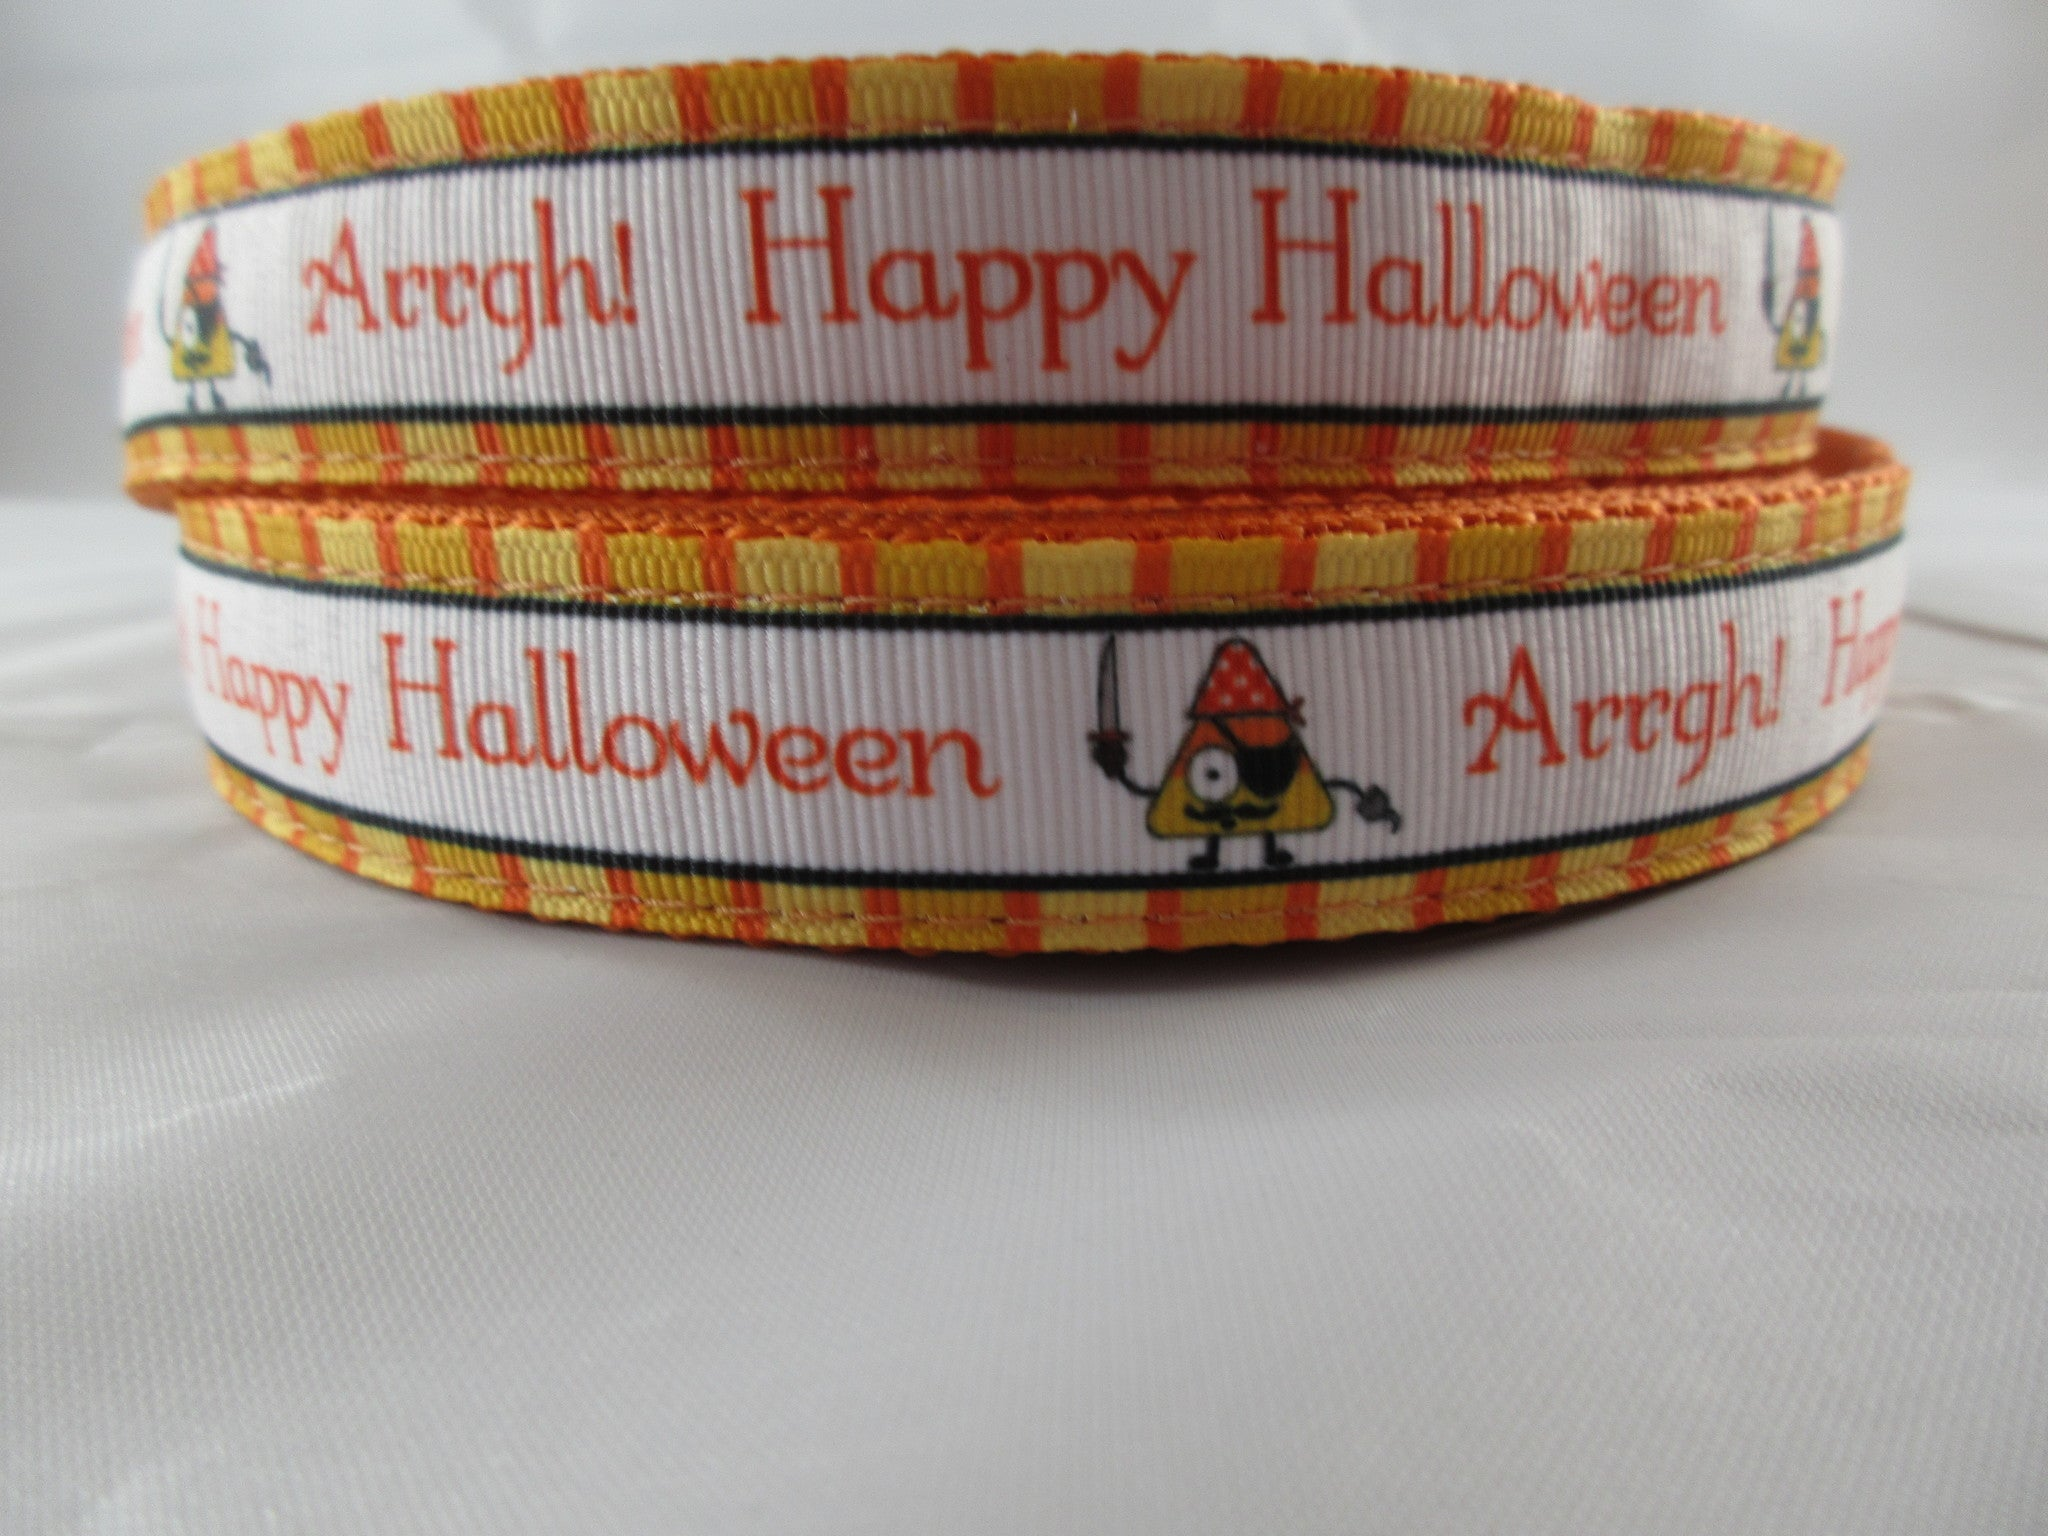 "1"" Pirate Halloween Dog Collar - Penny and Hoover's Pig Pen"